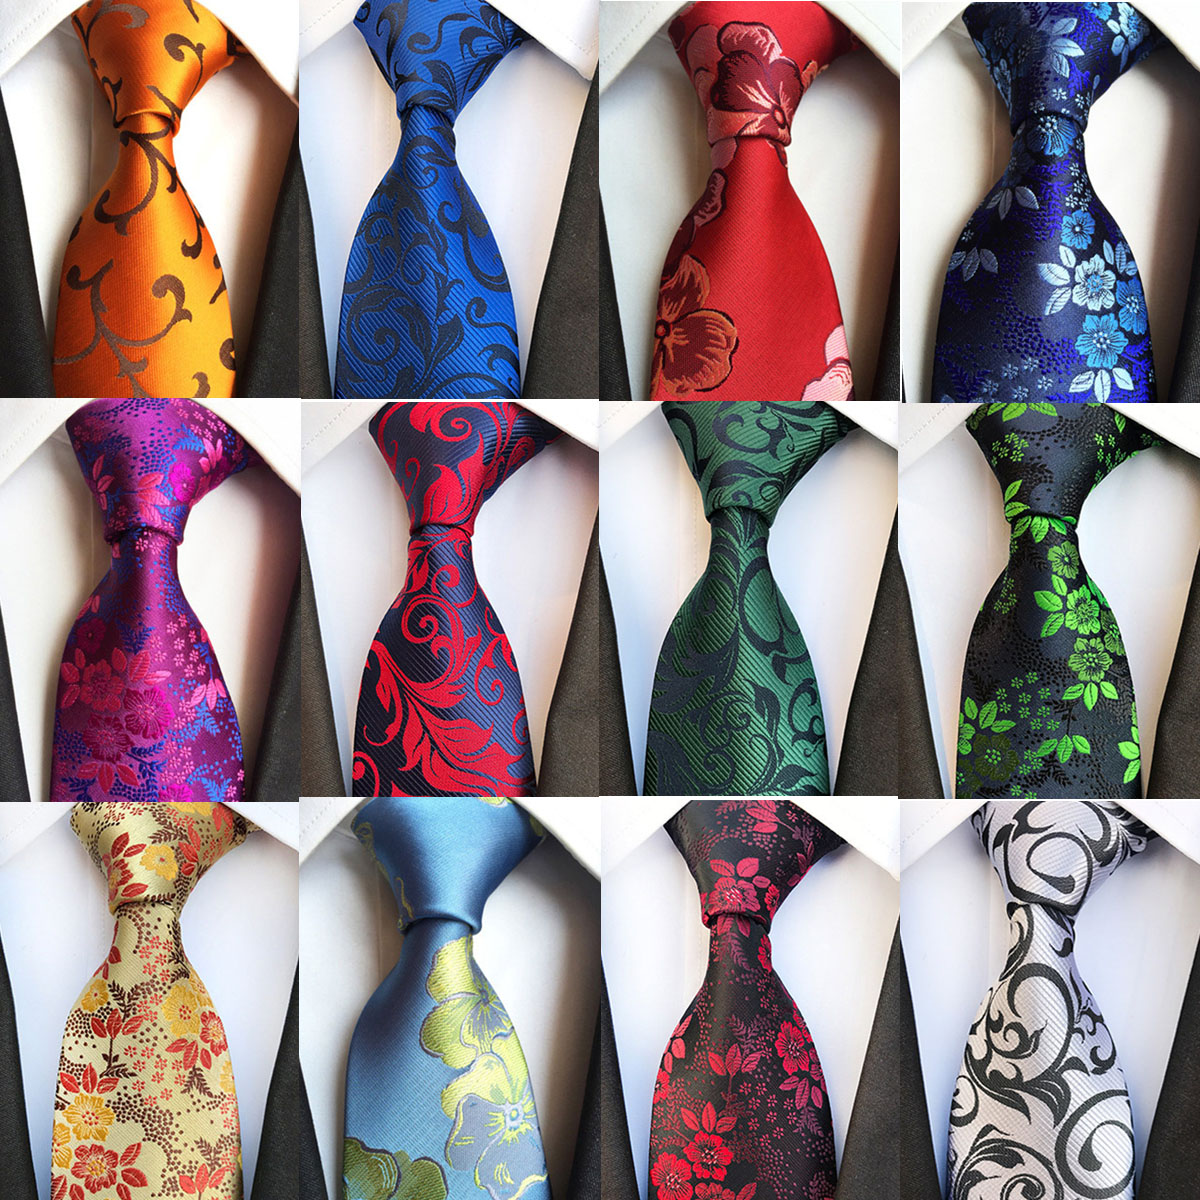 New Fashion 8cm Silk Men's Floral Tie Green Bule Jucquard Necktie Suit Men Business Wedding Party Formal Neck Ties Gifts Cravat